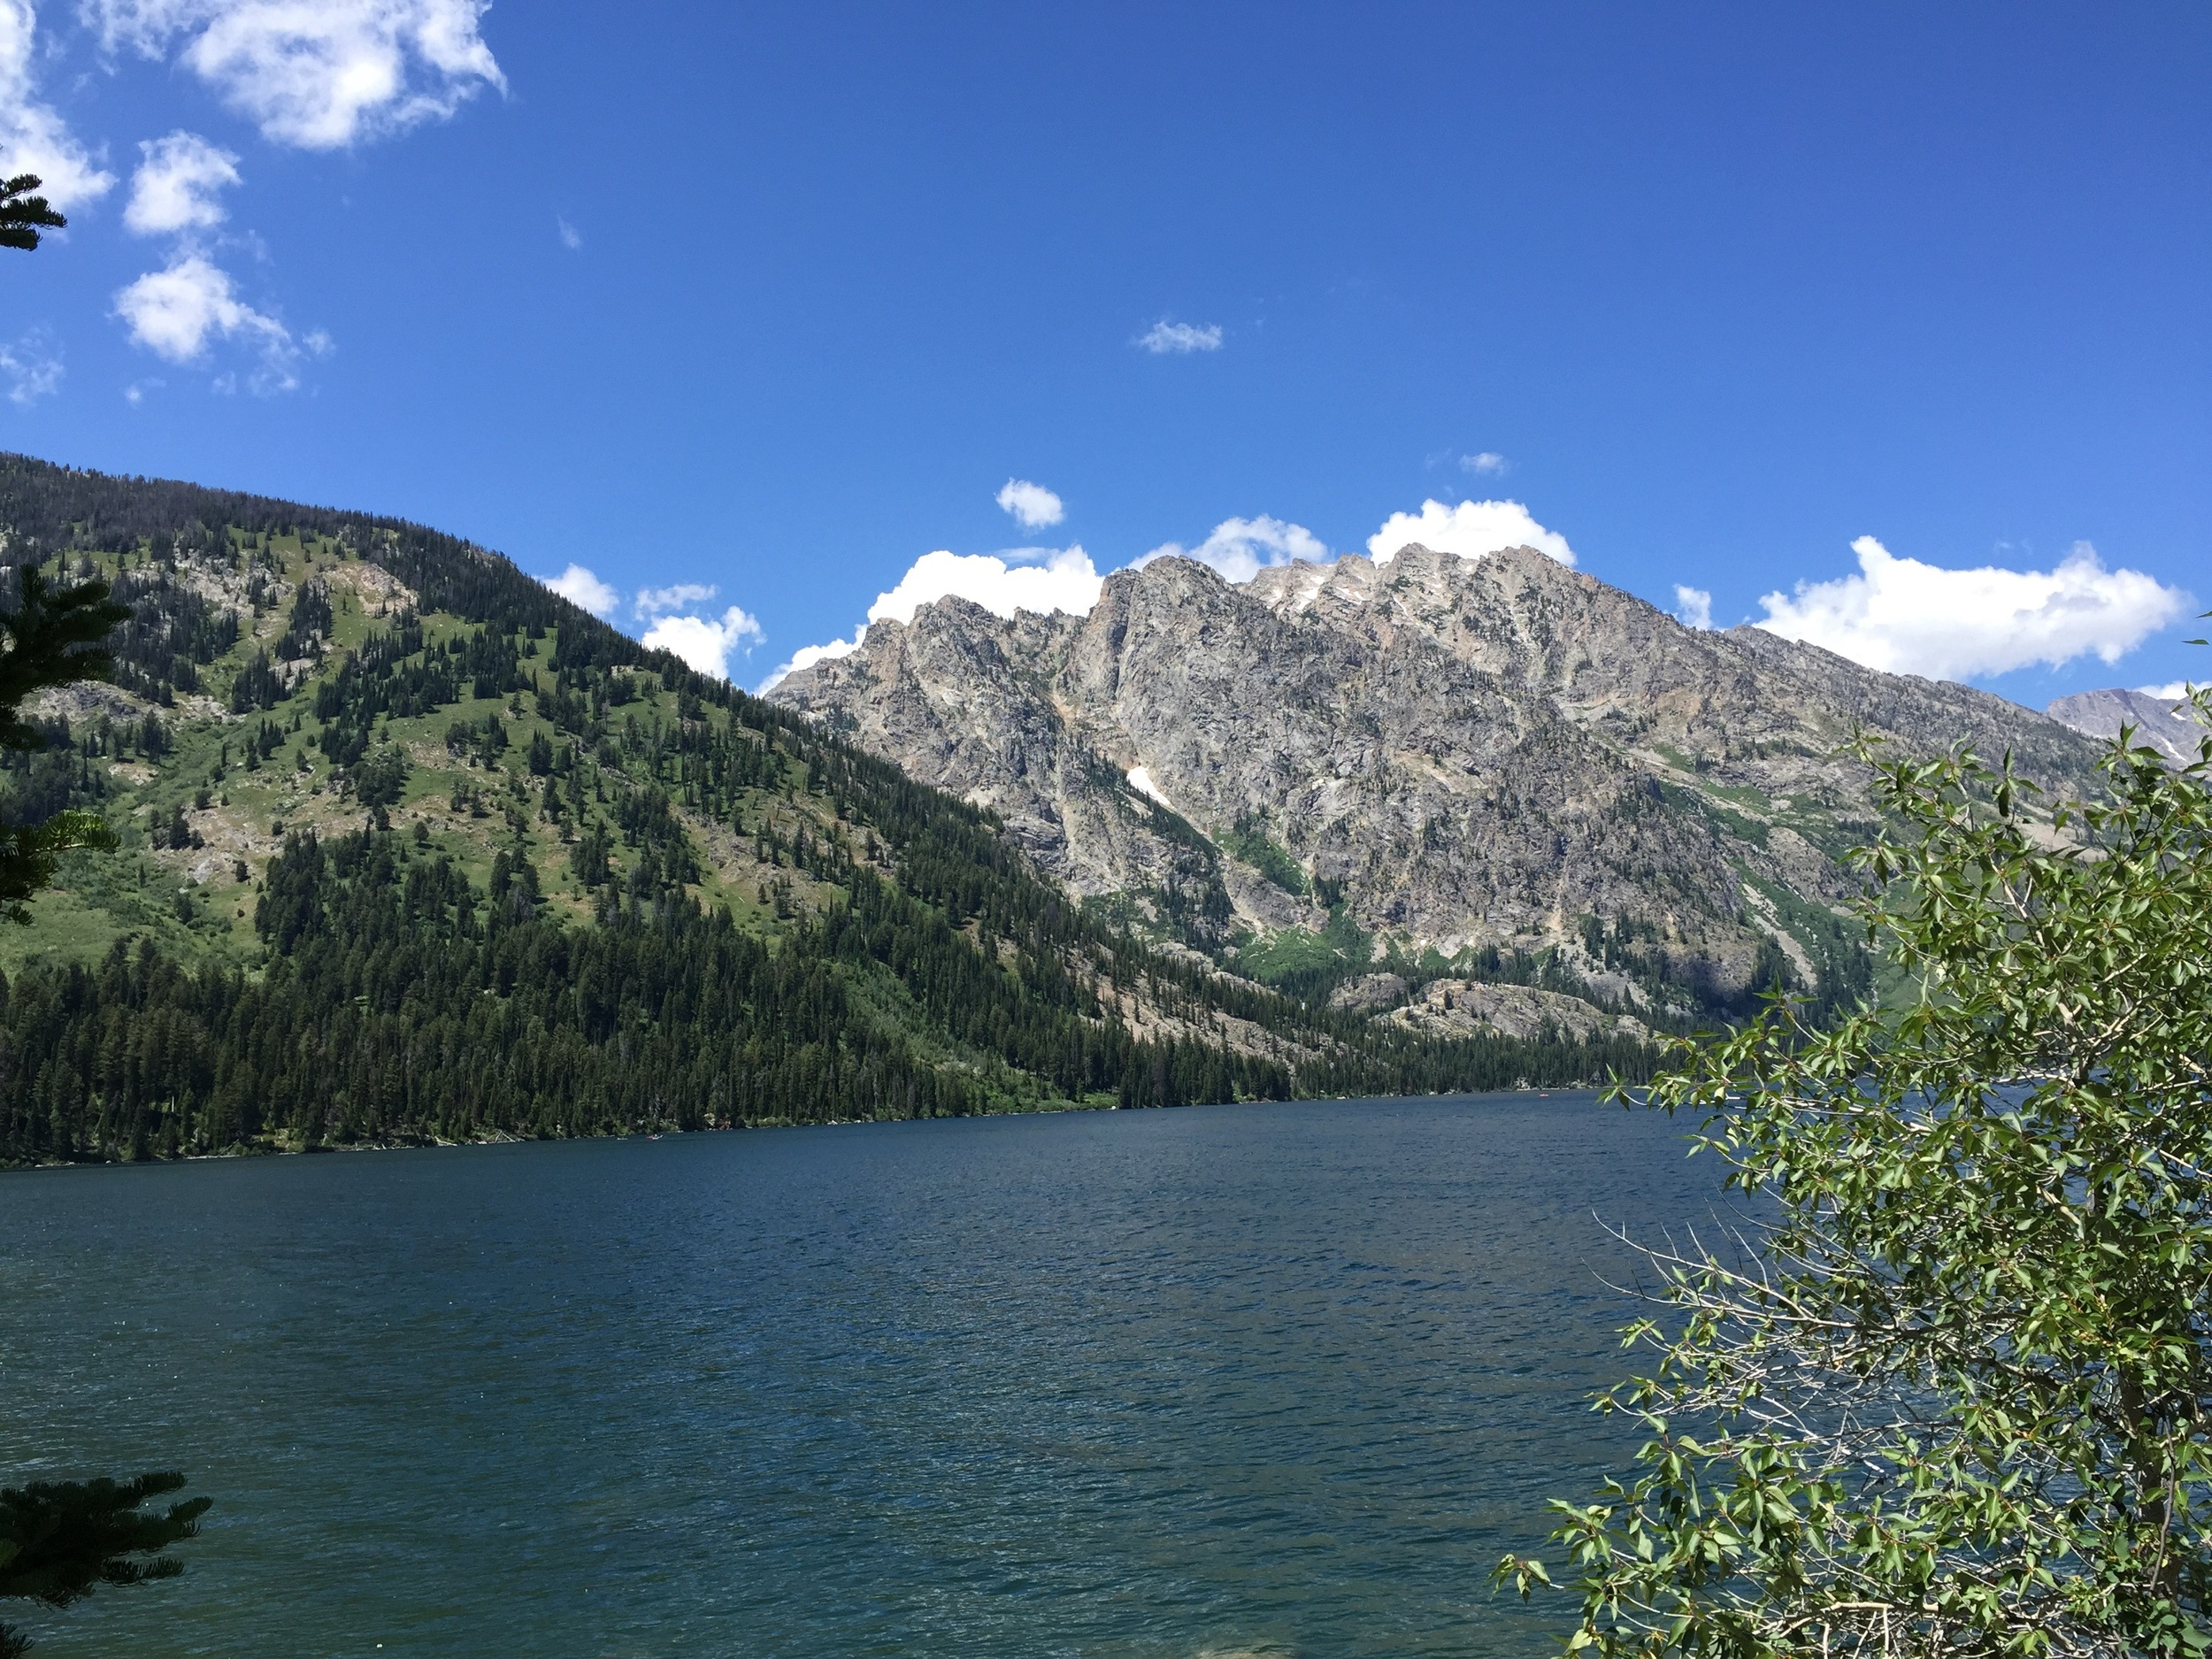 Looking across Jenny Lake. We would hike in the valley between the rocky mountain and the green mountain.